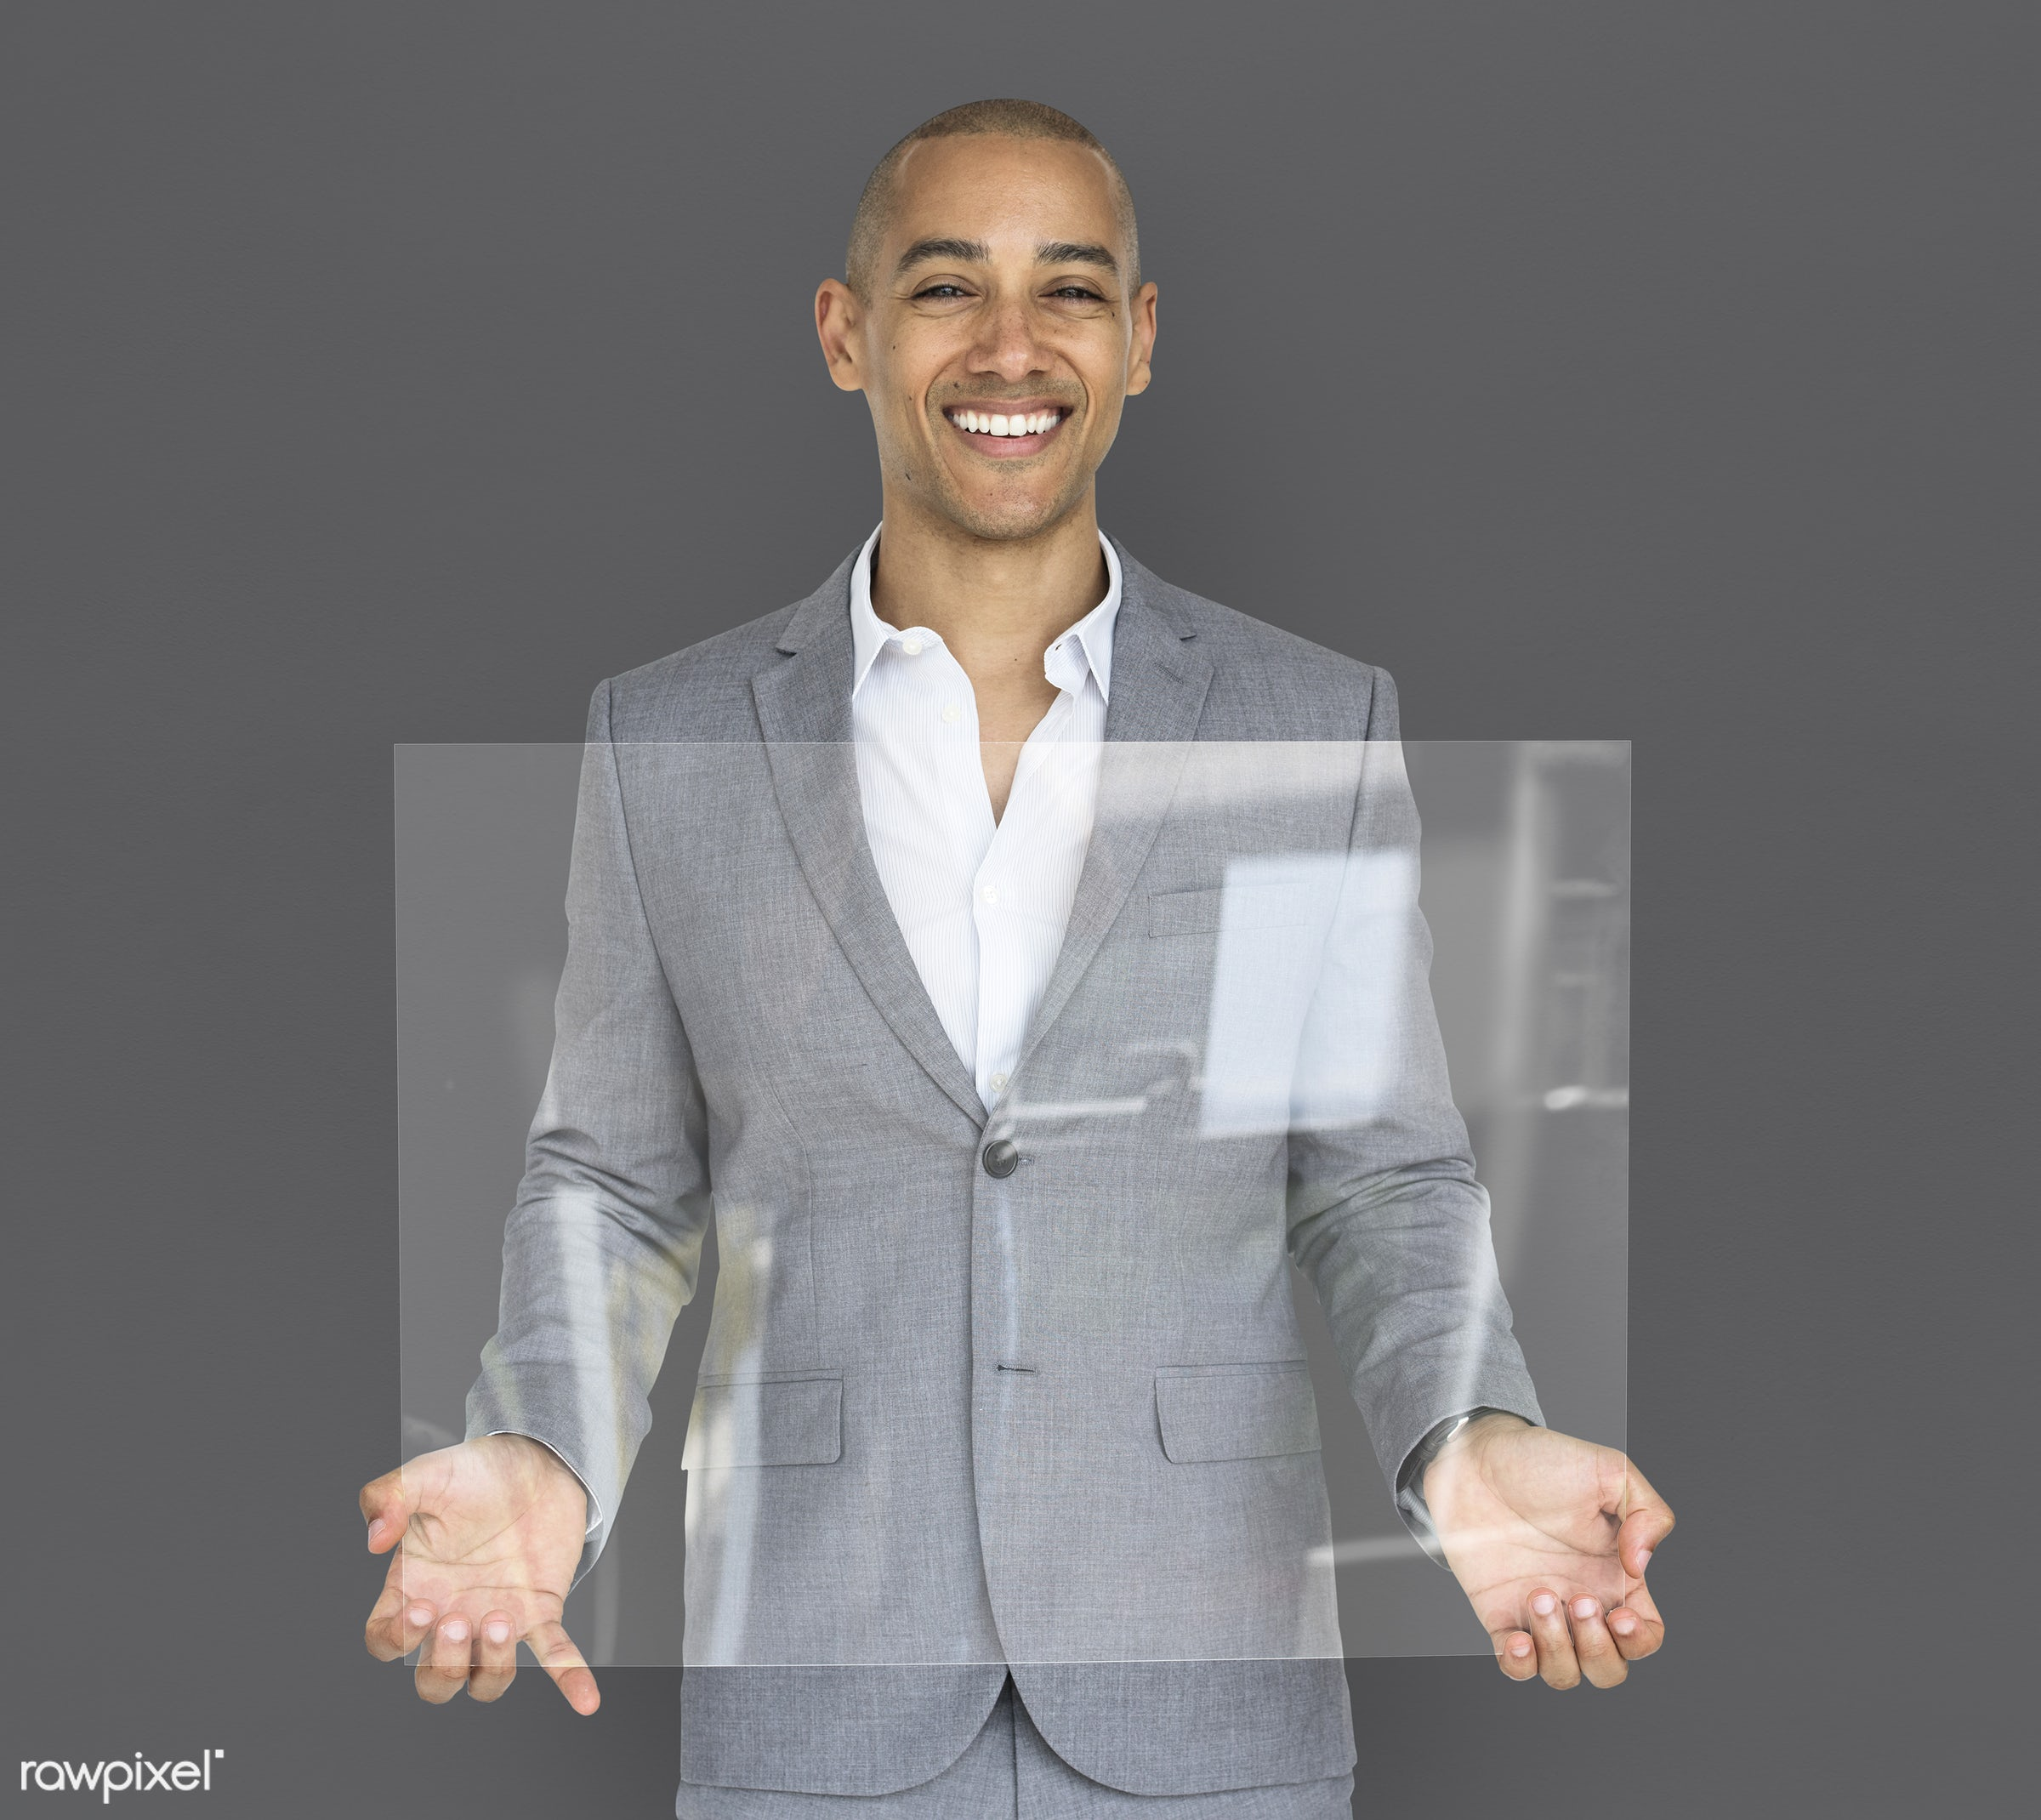 studio, expression, copy space, person, holding, joy, people, business, clear, placard, businessman, happy, grey, mixed race...